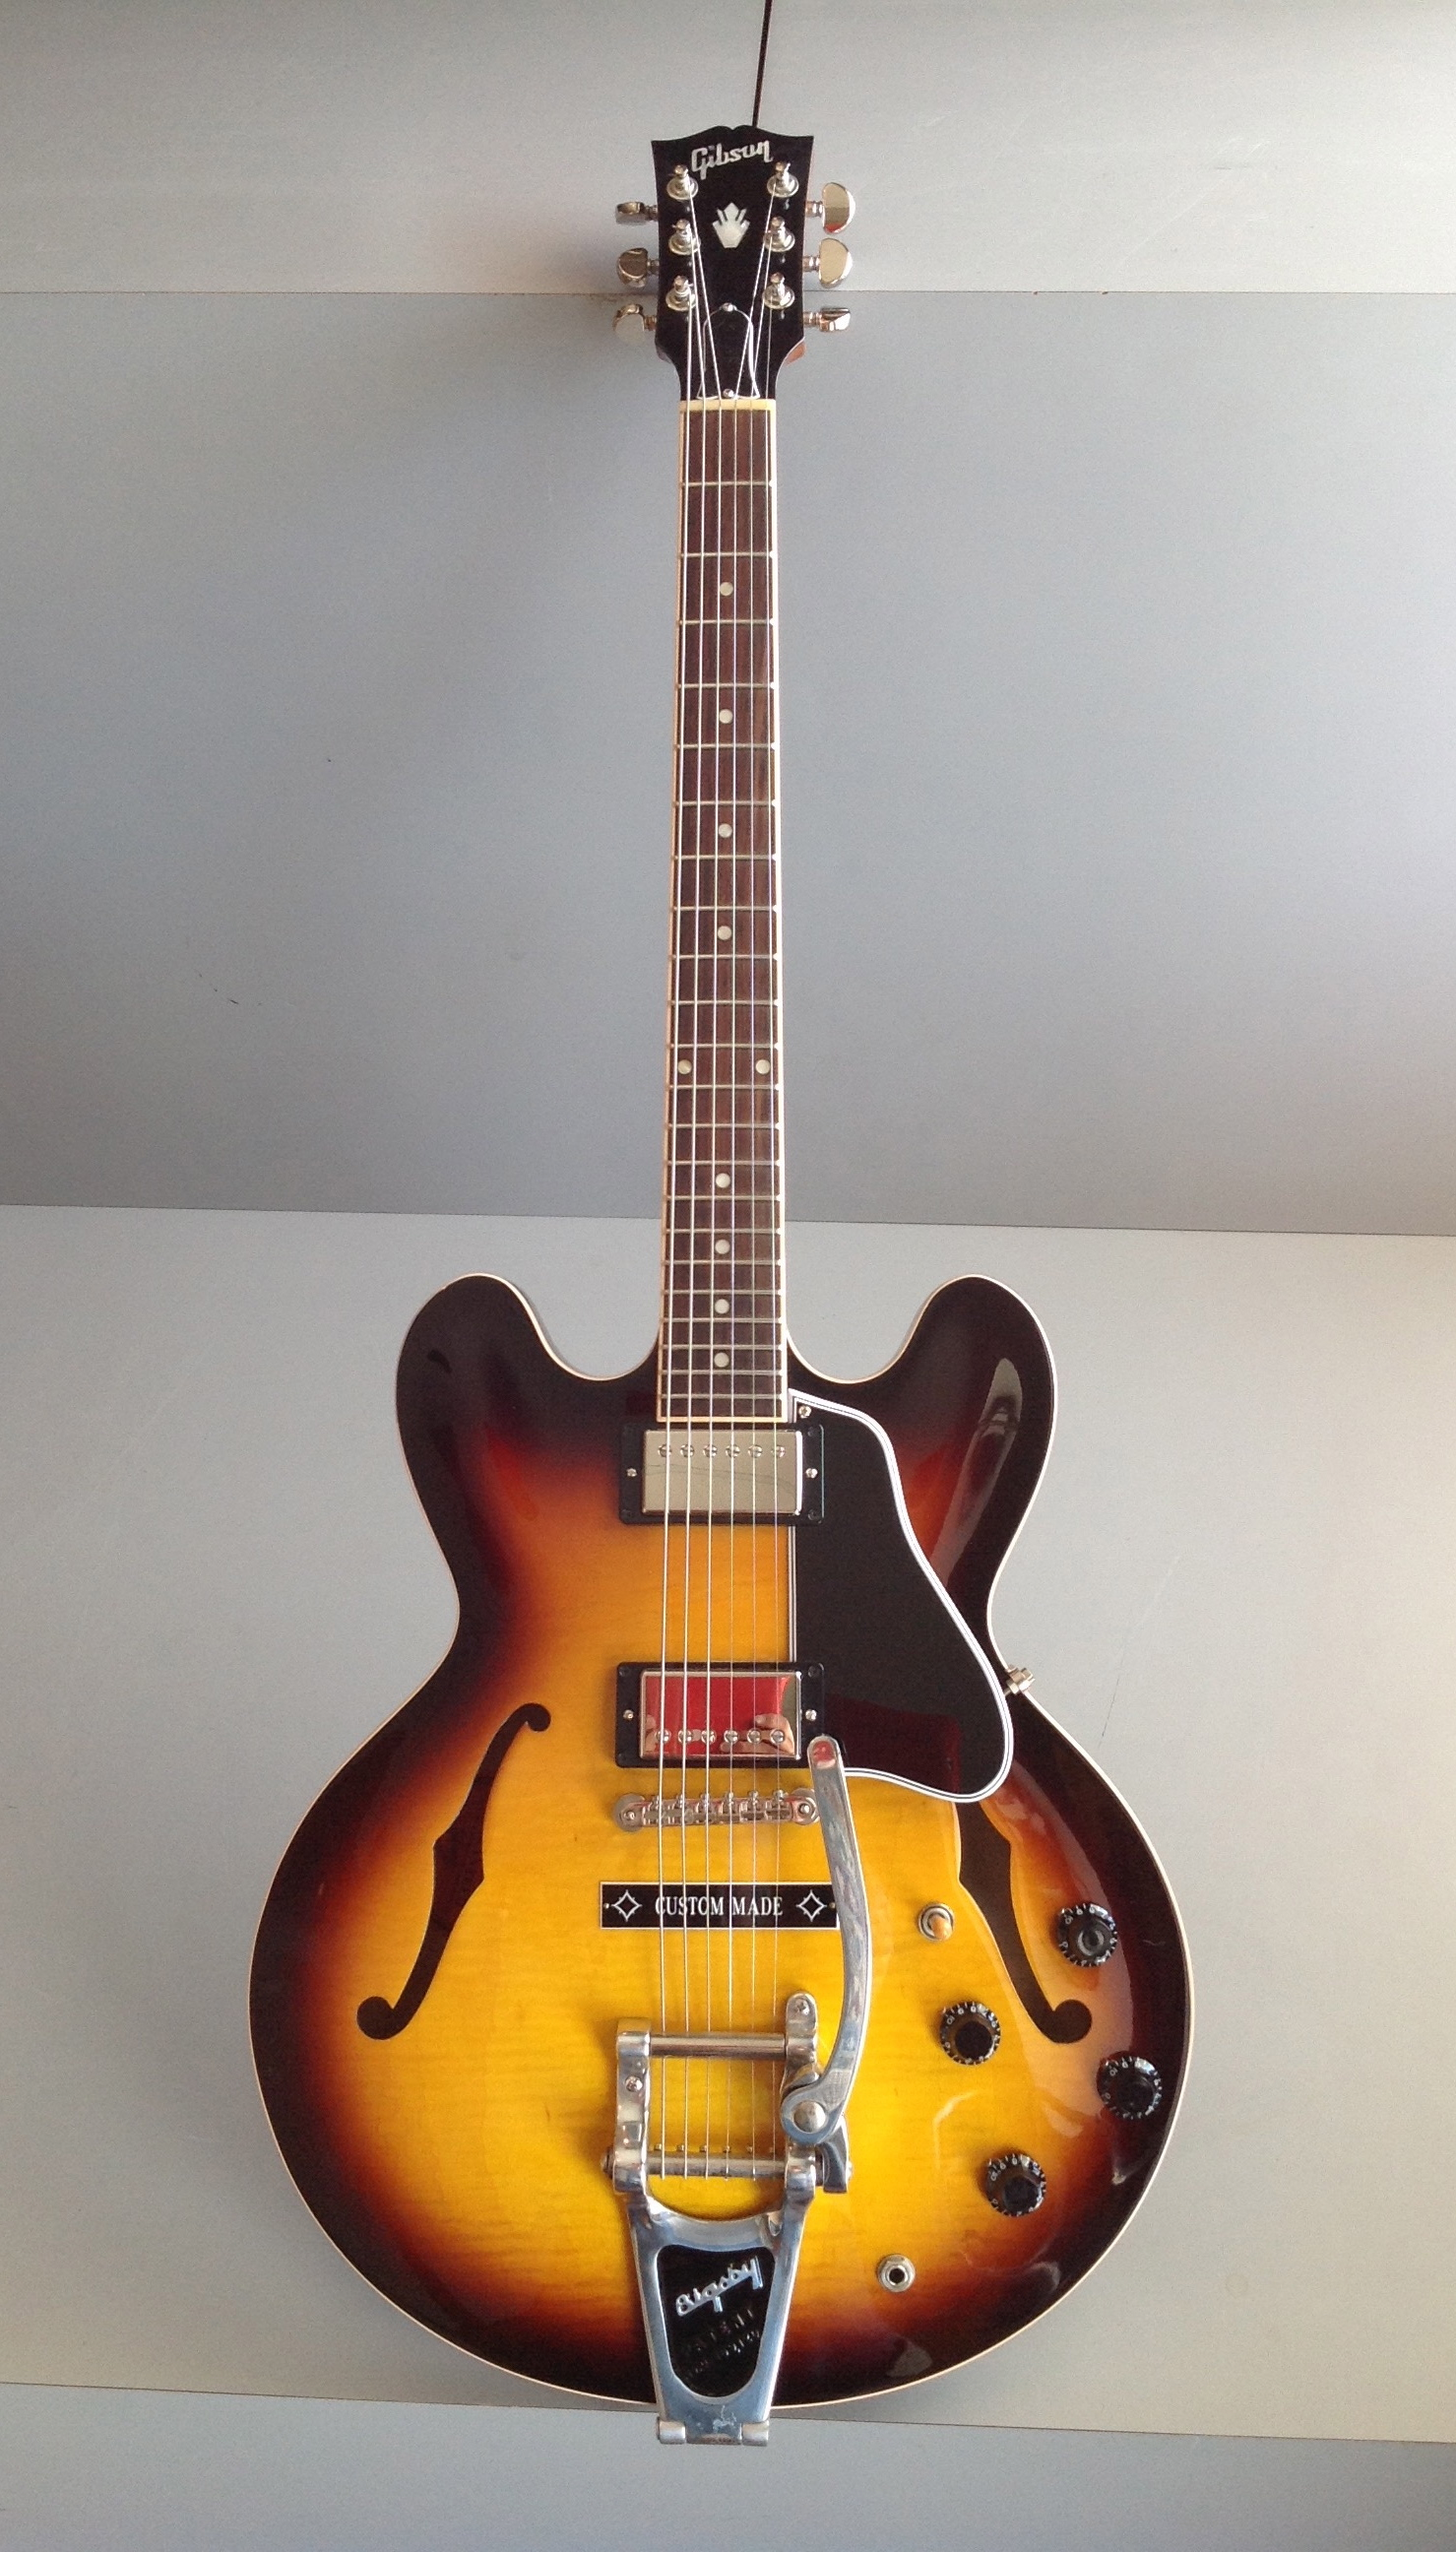 gibson es 335 custom with bigsby guitars electric semi hollow body guitar exchange. Black Bedroom Furniture Sets. Home Design Ideas